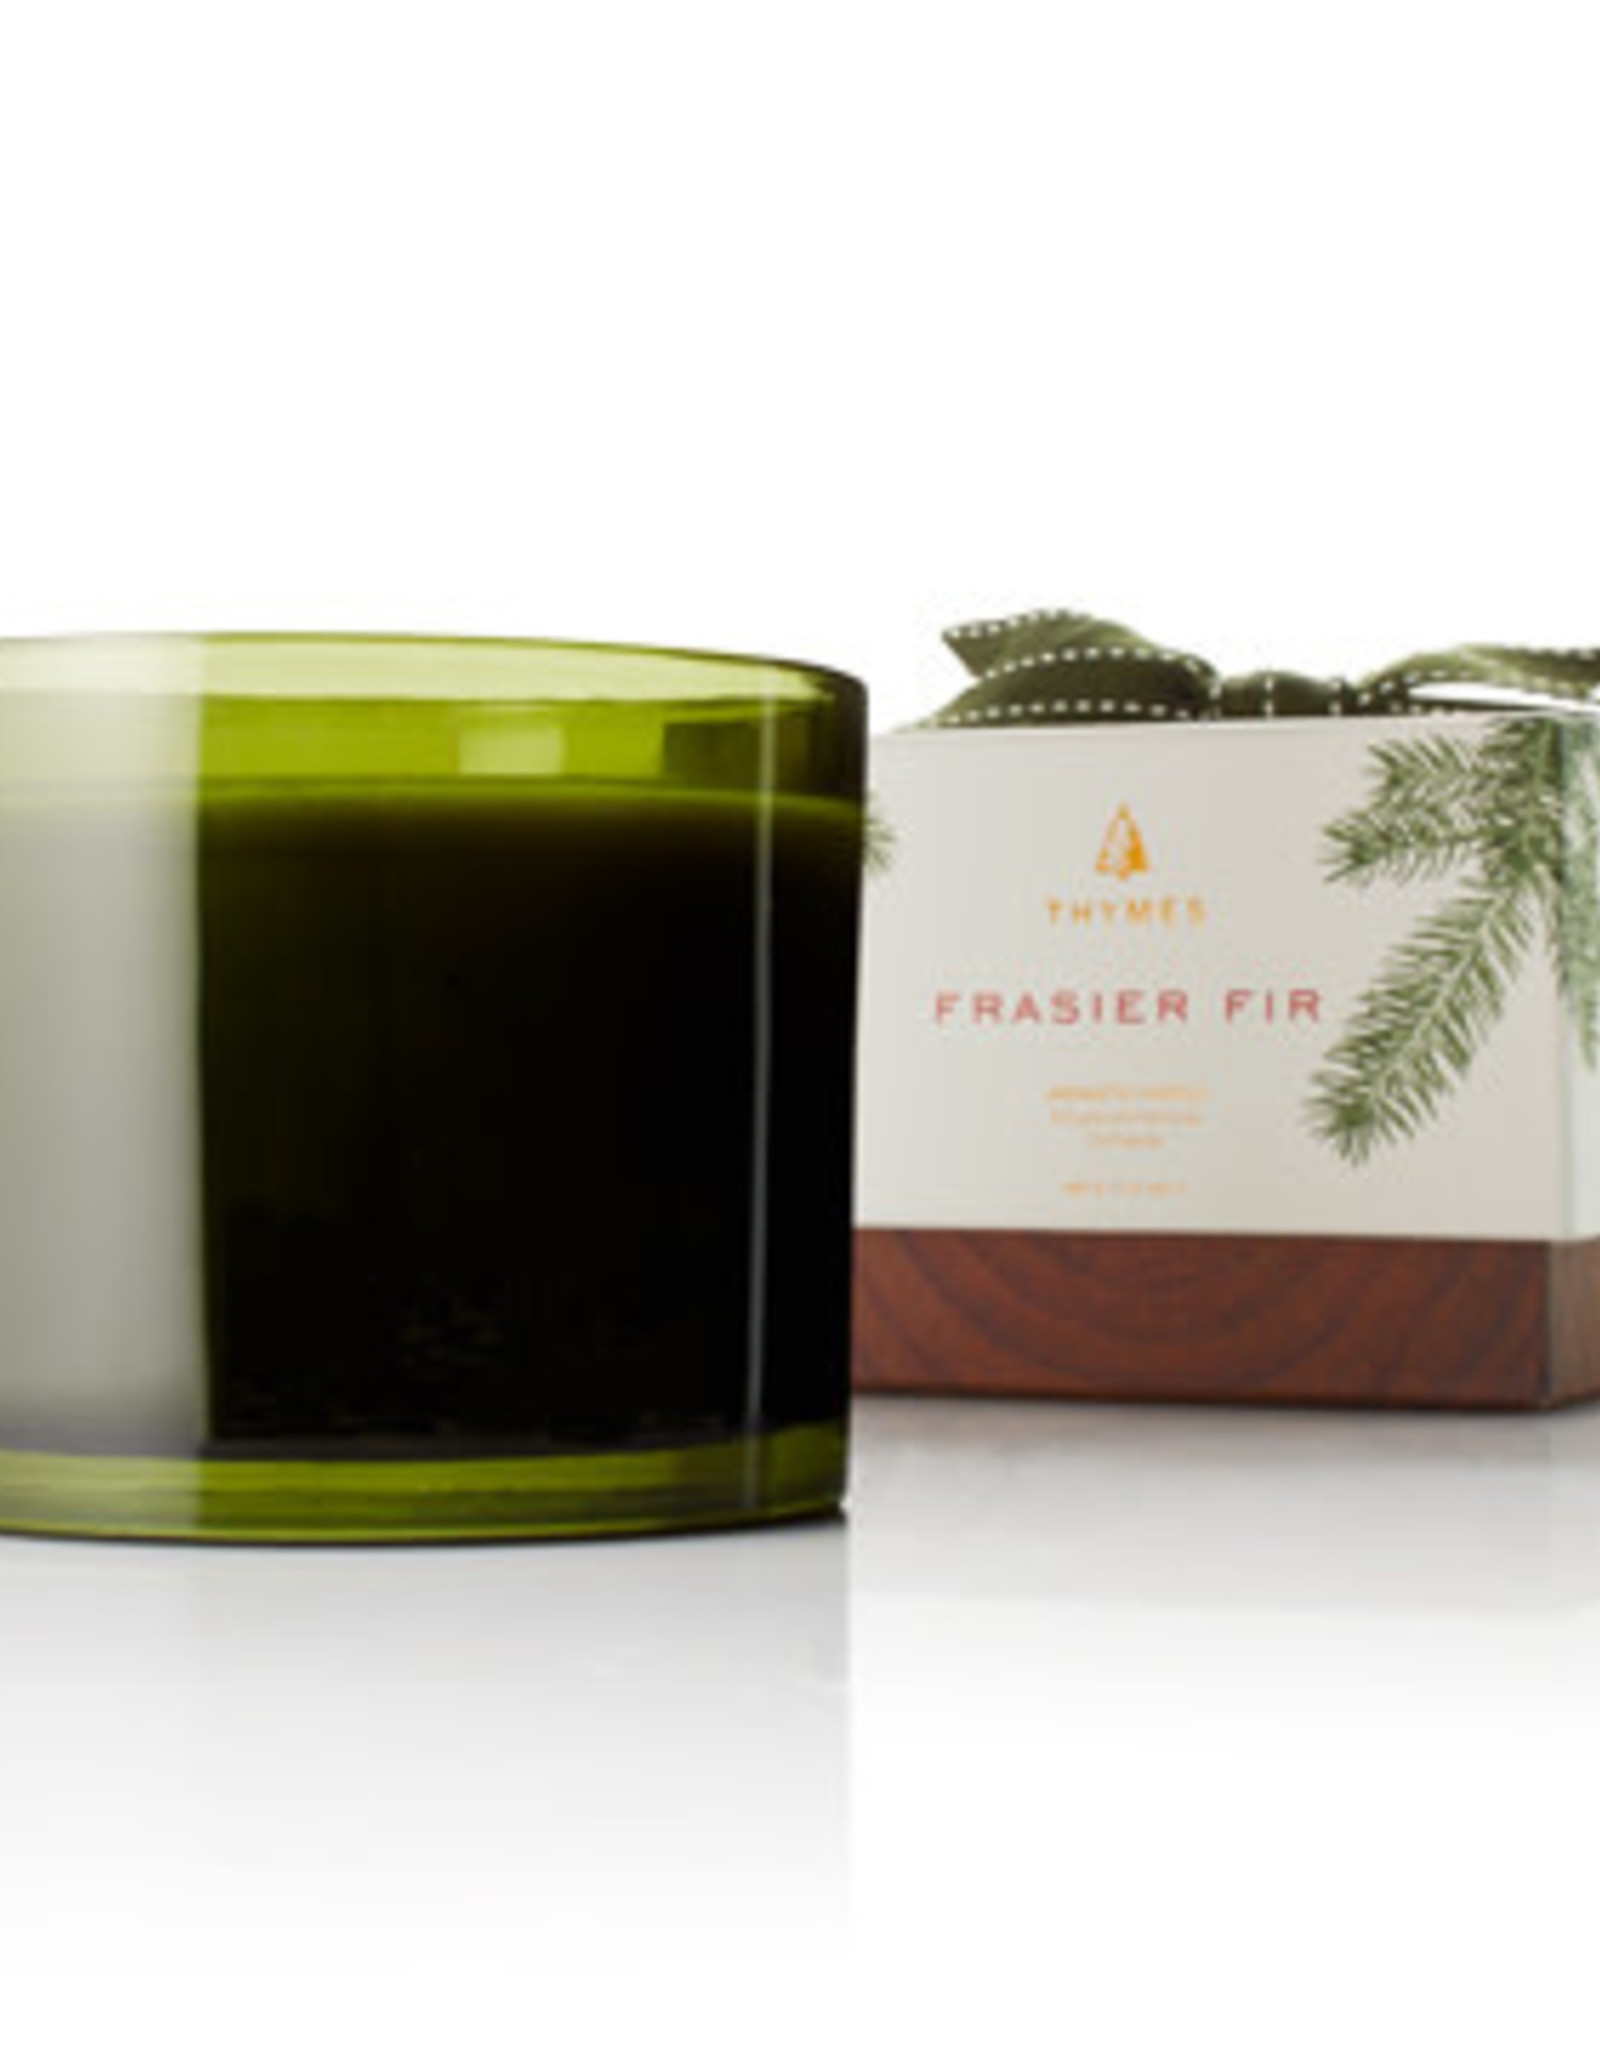 Frasier Fir Poured Candle, 3-wick